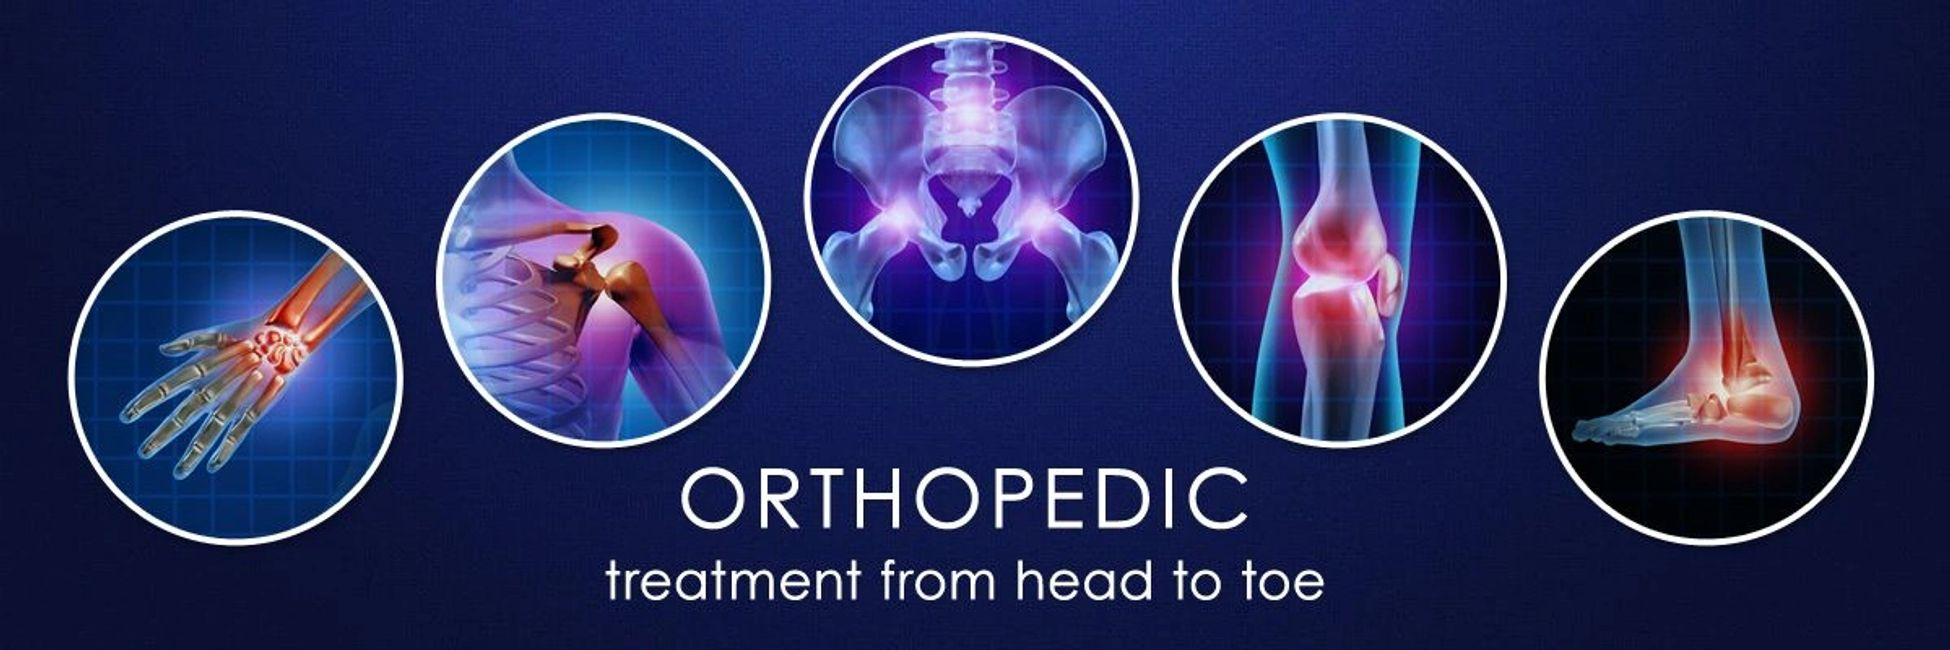 Amrutha Orthopedic Clinic Rajaji nagar Bangalore  is the best orthopedic clinic for complete orthopedic care, facilities available are orthopedic doctor consultation, bone specialists, bone doctor, treatment for neck pain, joints pain, low back pain.